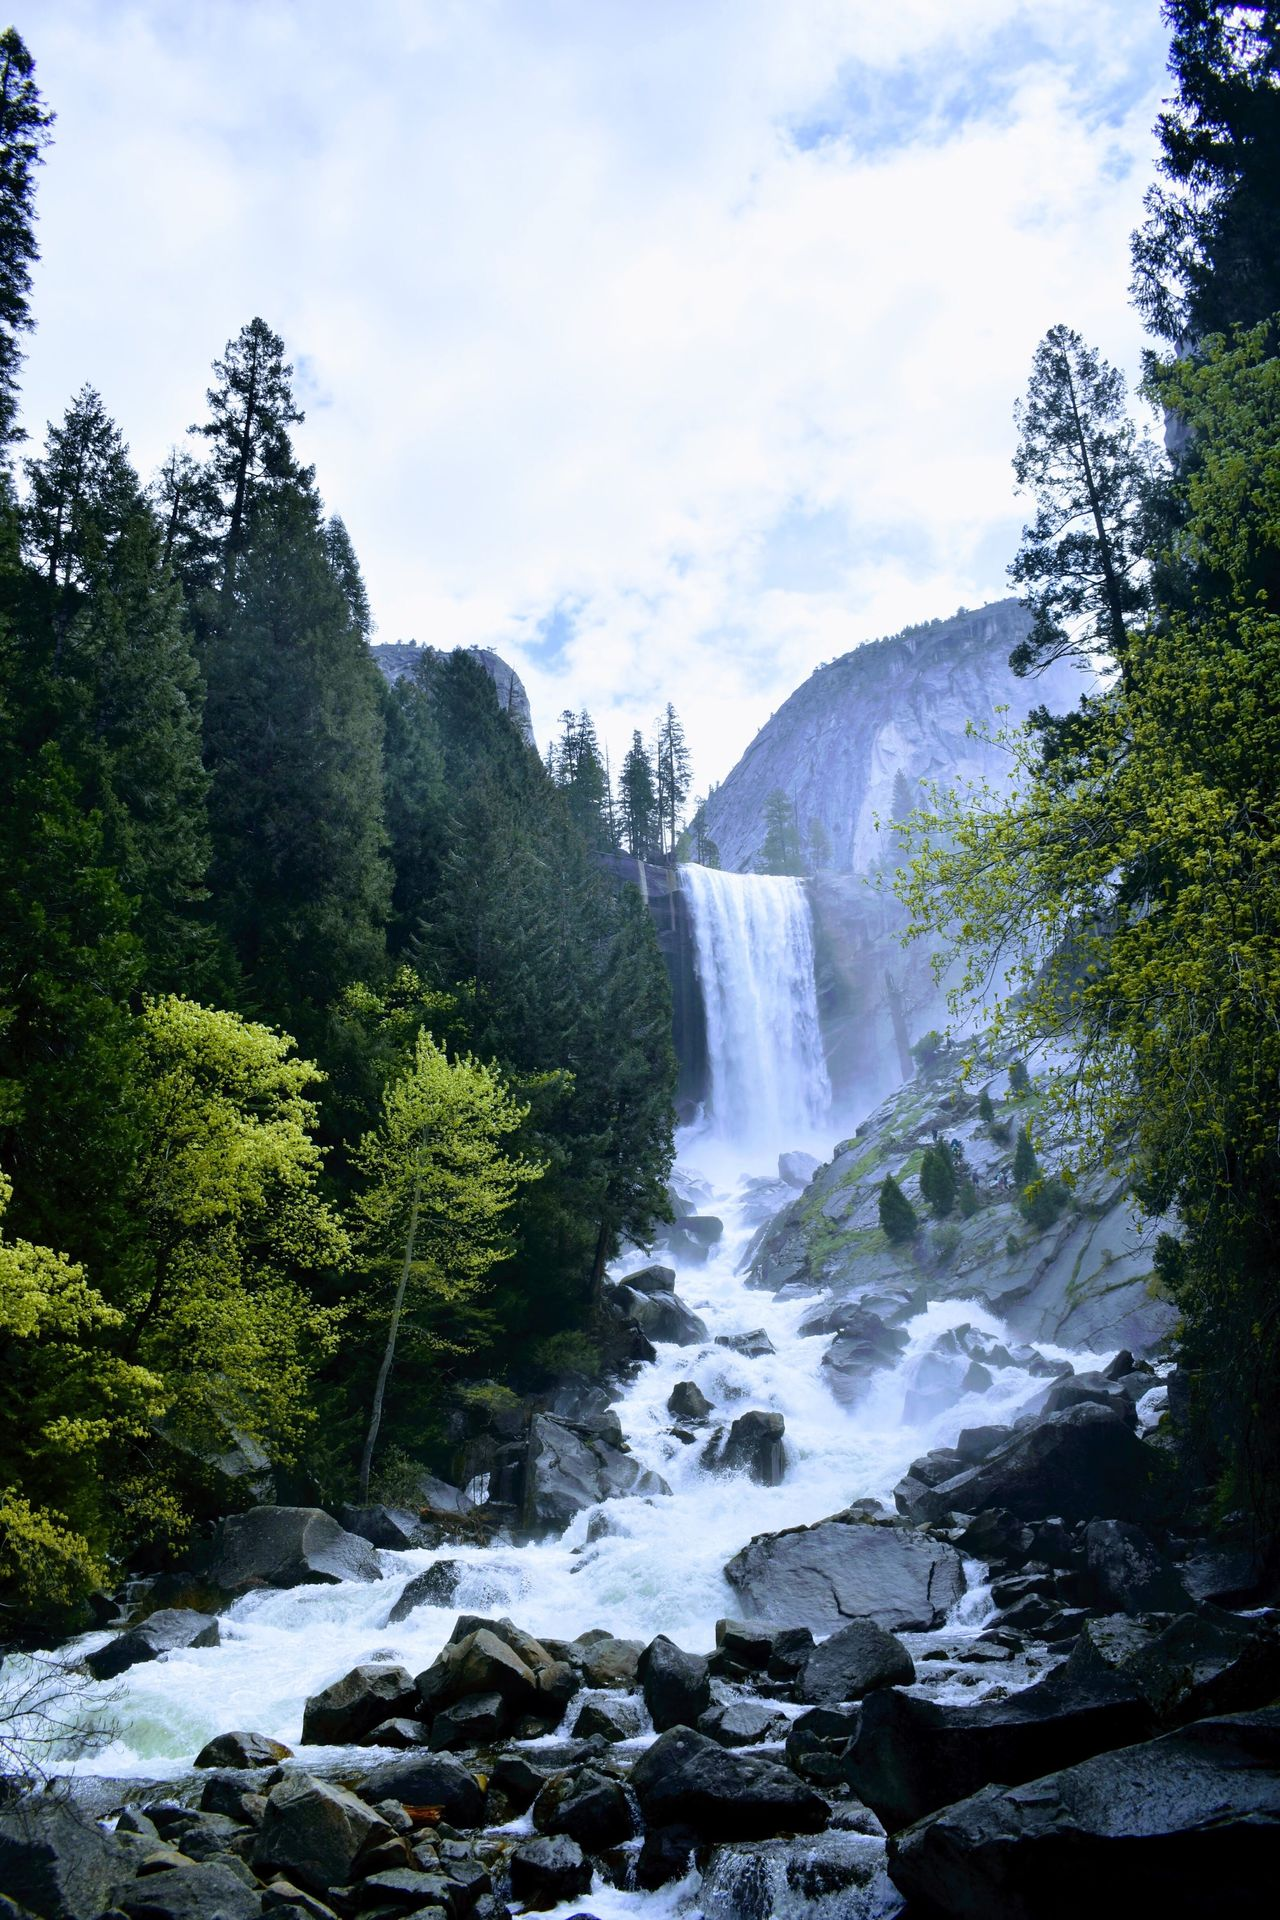 Vernal Falls Waterfall Yosemite National Park Water Nature Forest Tranquil Scene The Great Outdoors - 2017 EyeEm Awards Travel Destinations